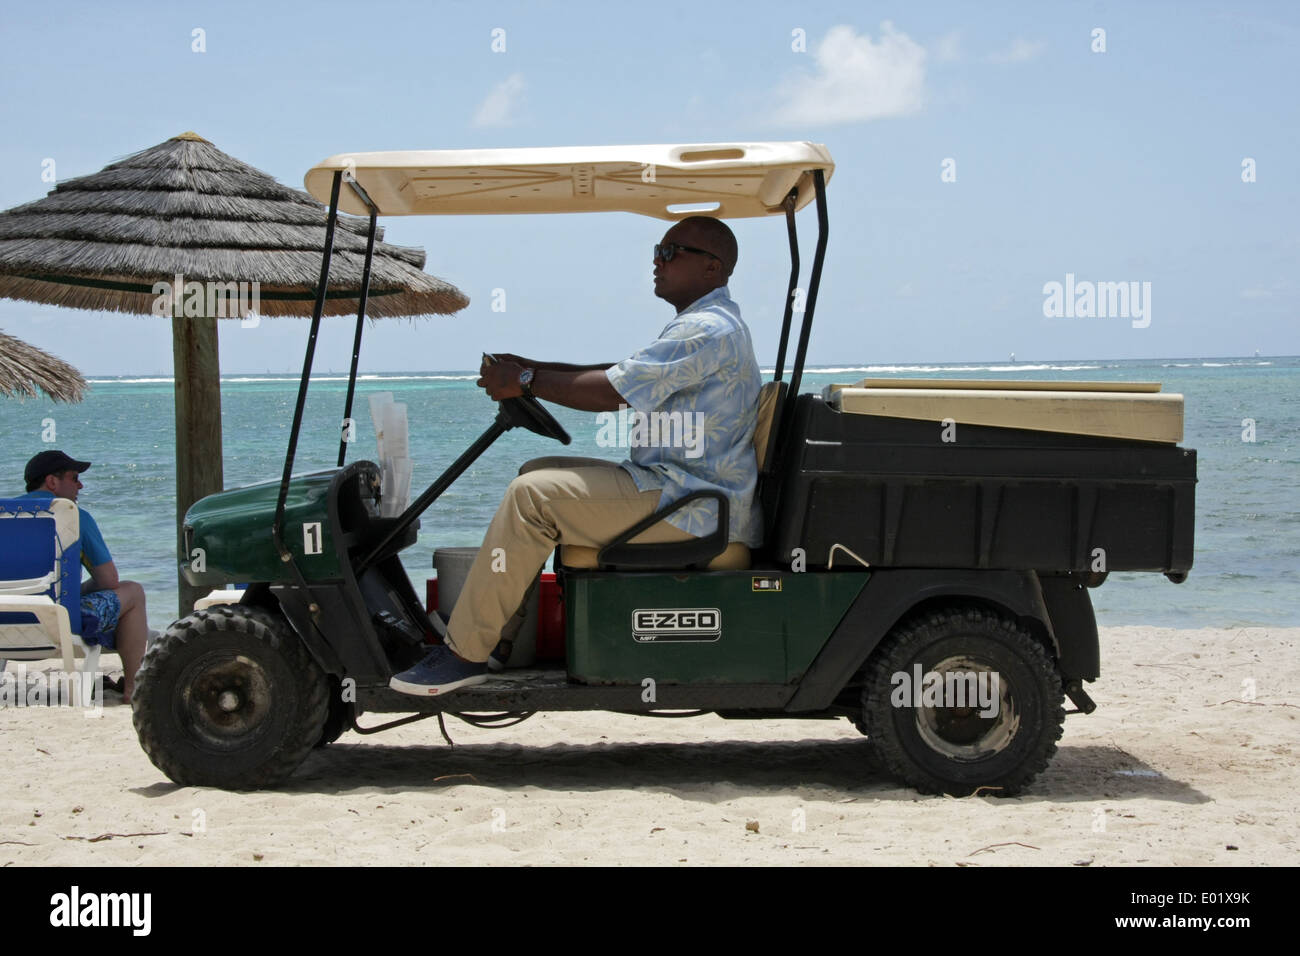 a drinks cart (golf buggy) appears on Coco beach to serve ice cold drinks to sunbathers, St James Club, Antigua - Stock Image